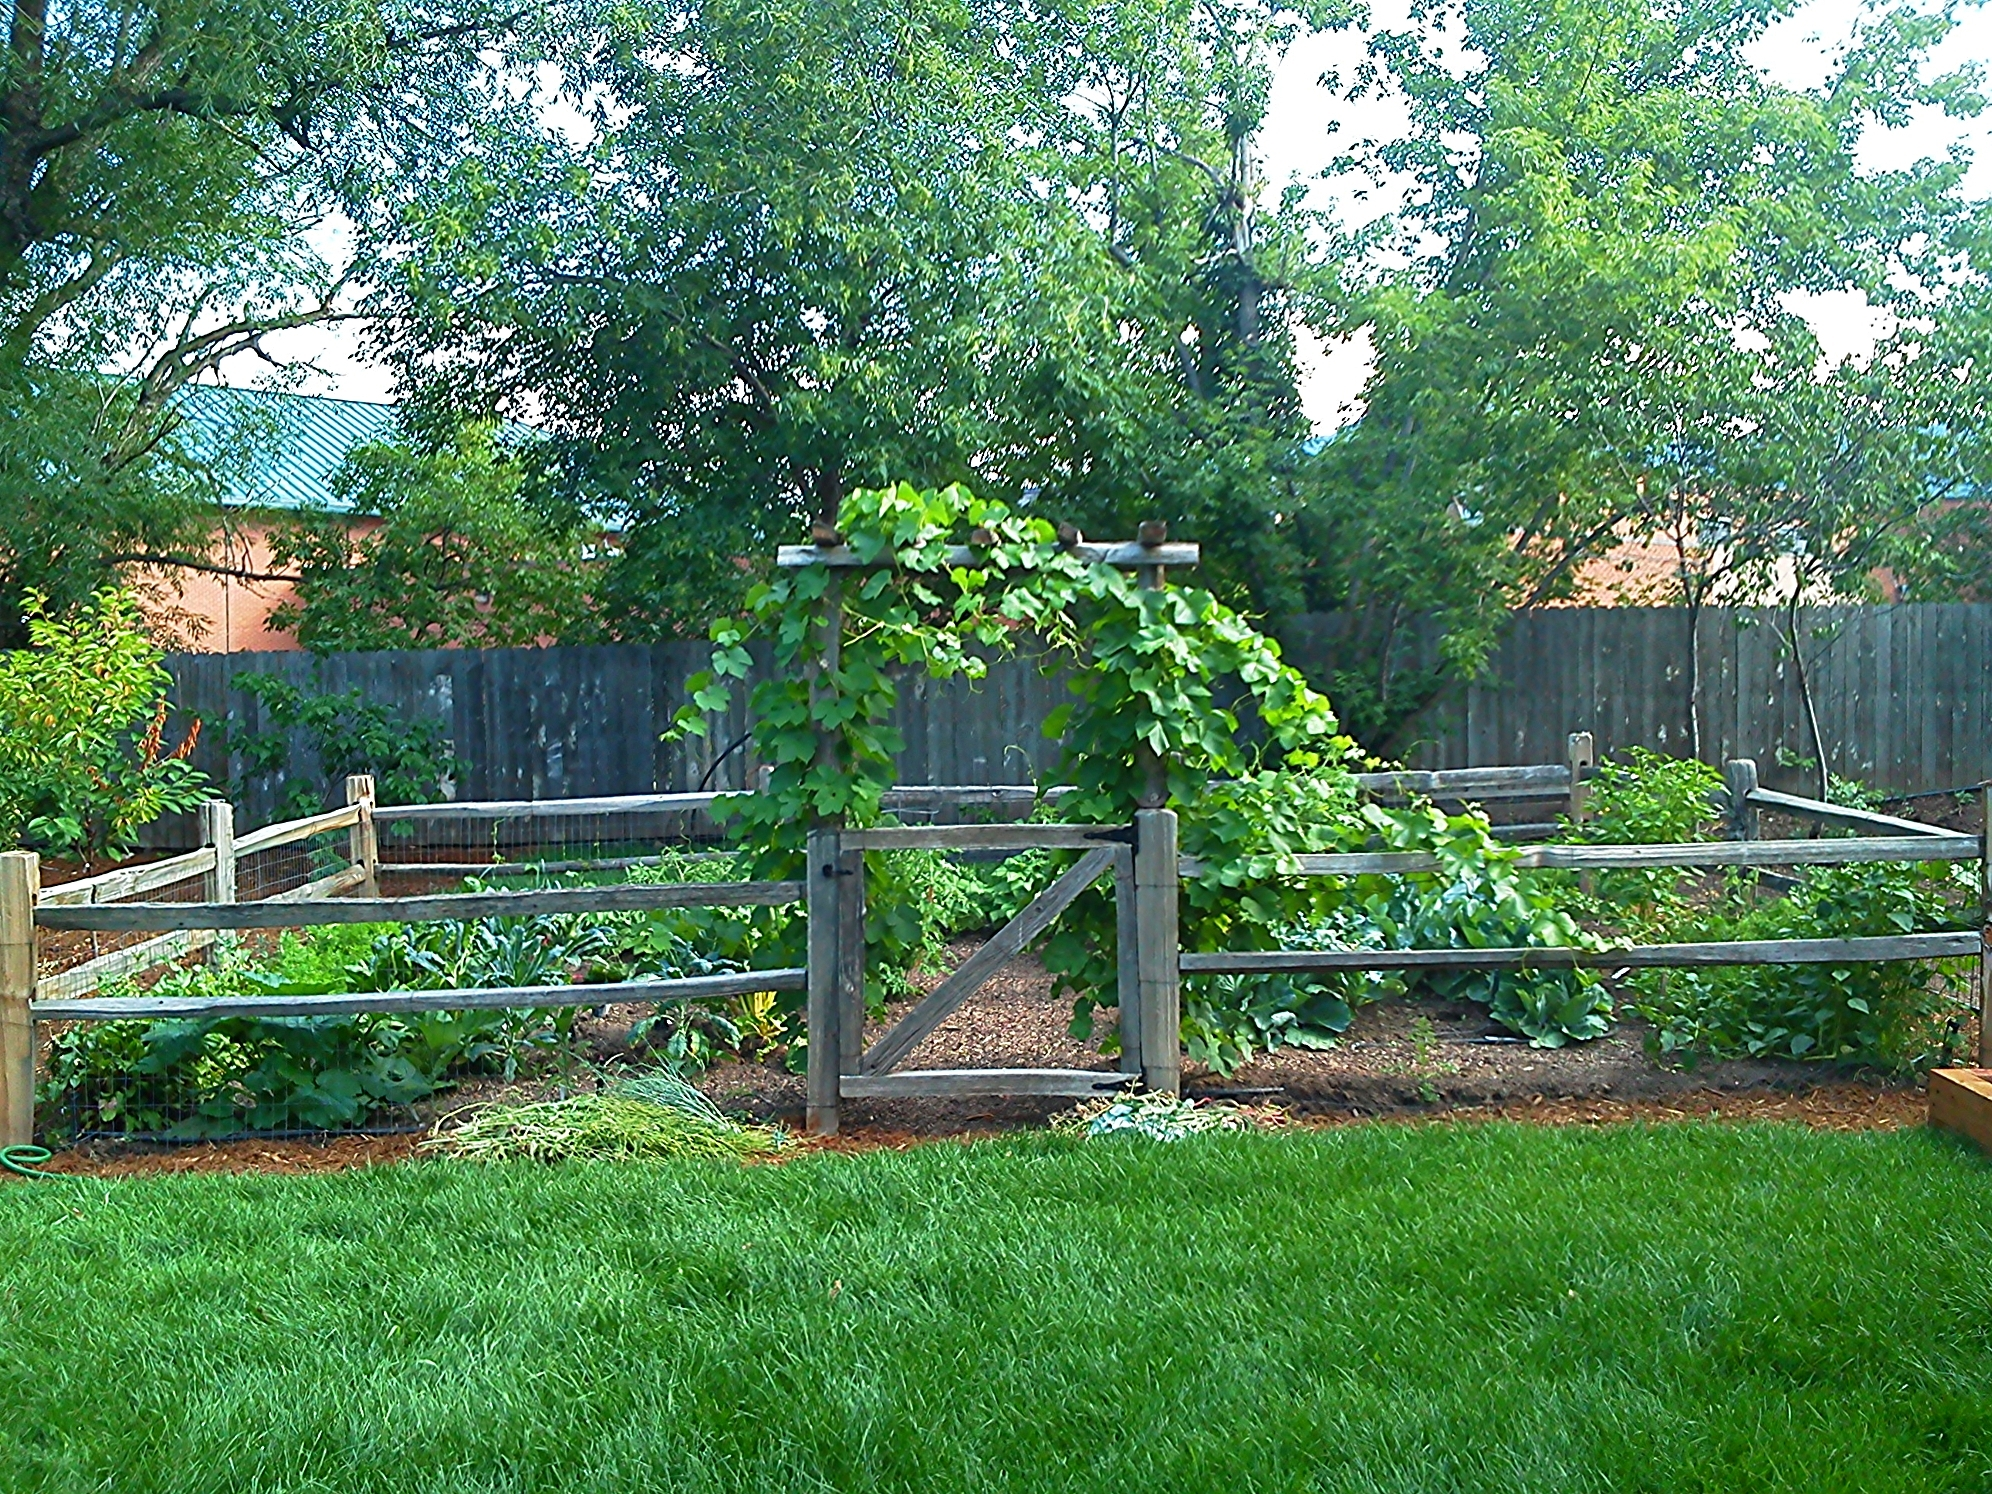 Image of: Veggiescapes Providing Veggiescapes Edible Landscape Services For Edible Landscape Design Good Ideas Edible Landscape Design